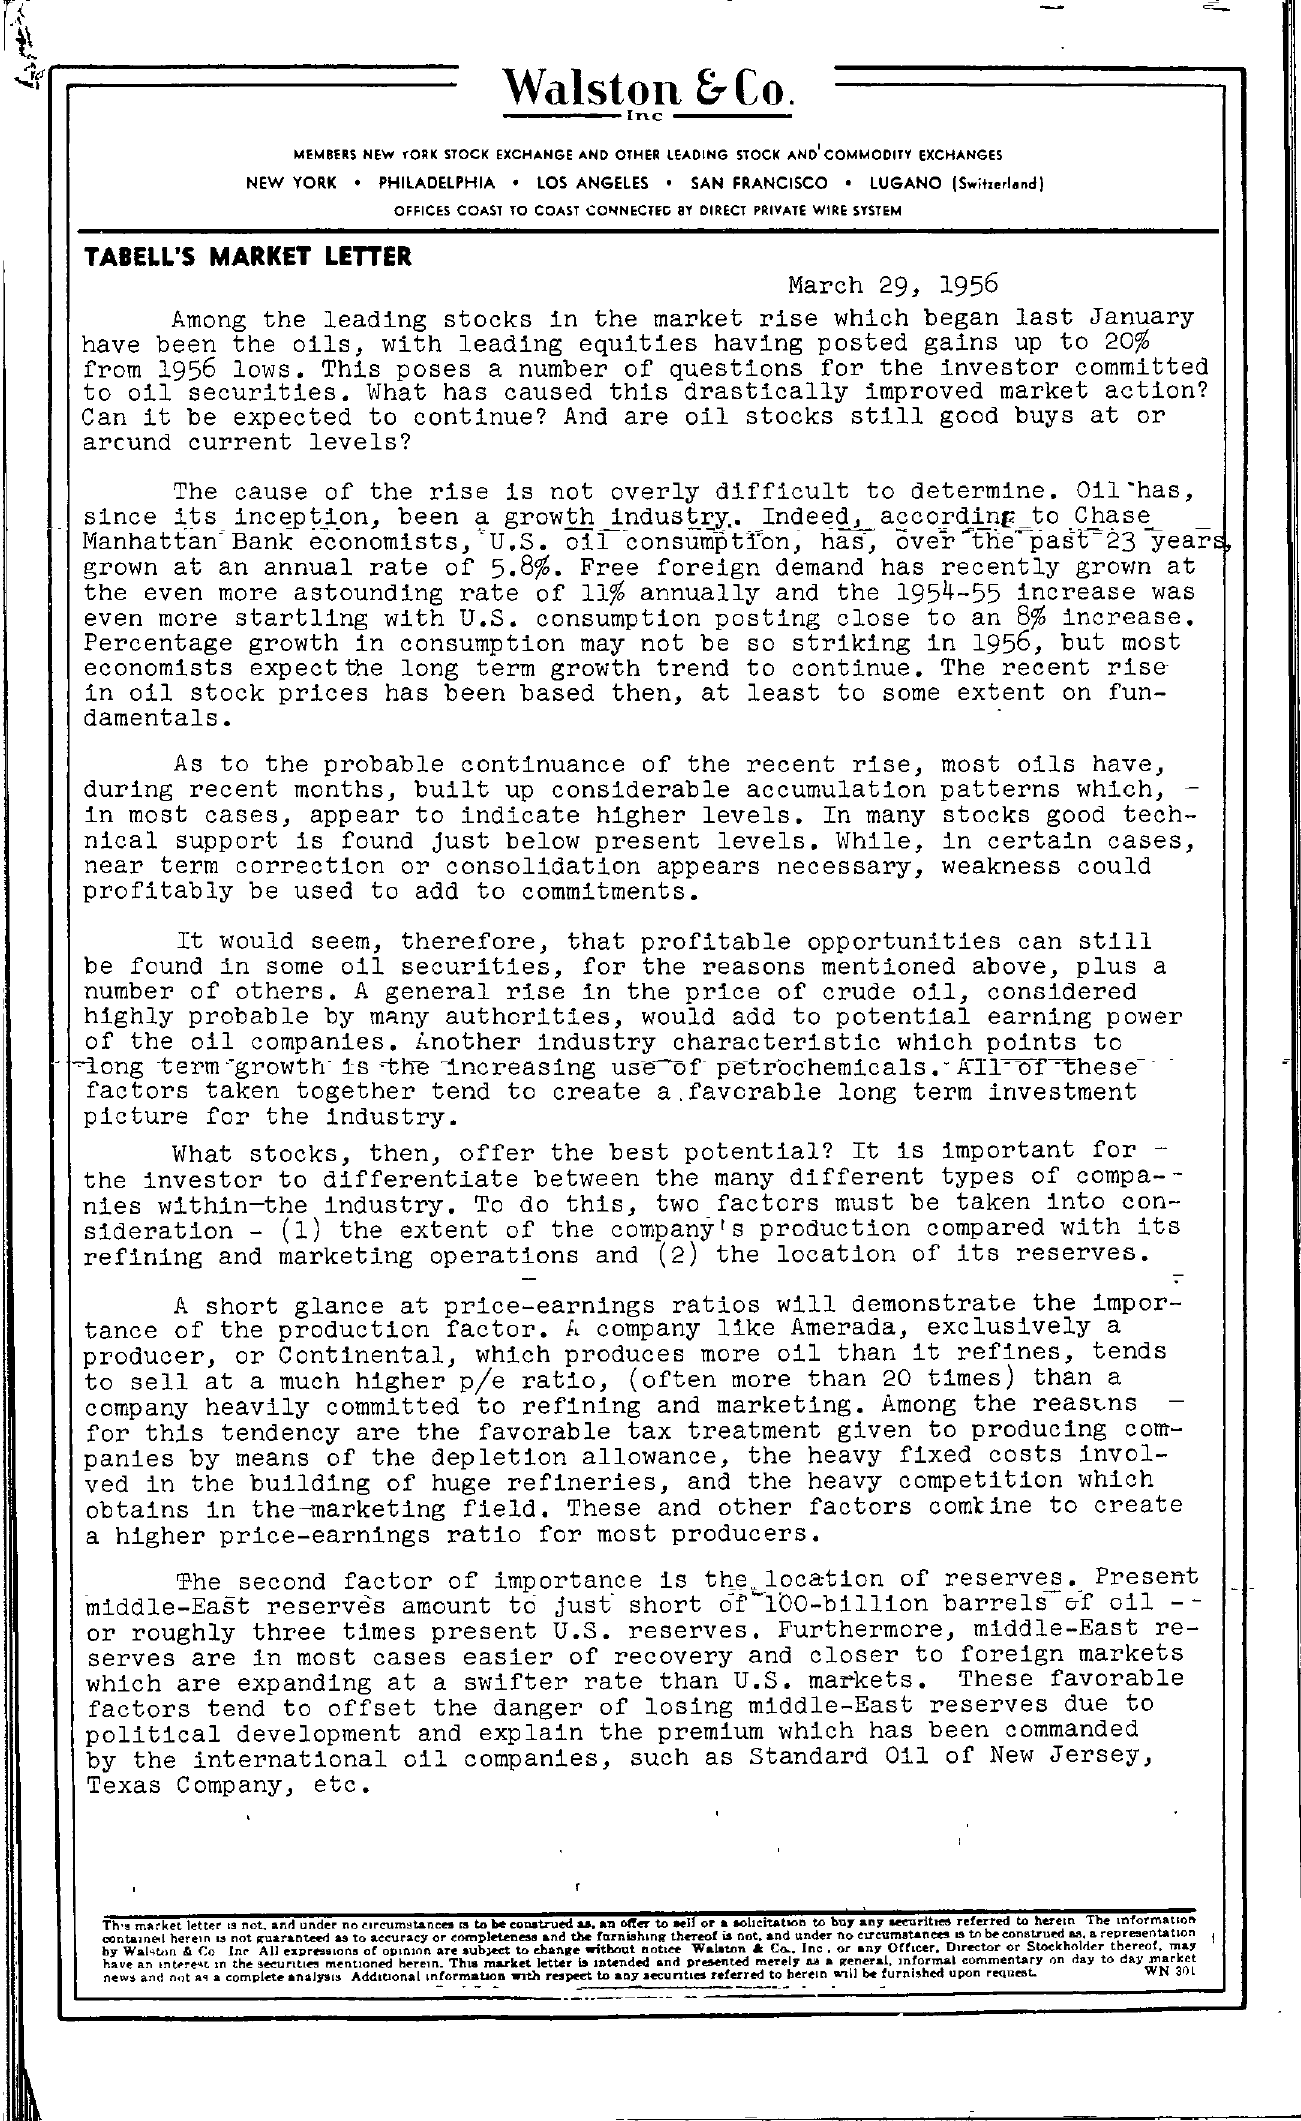 Tabell's Market Letter - March 29, 1956 page 1